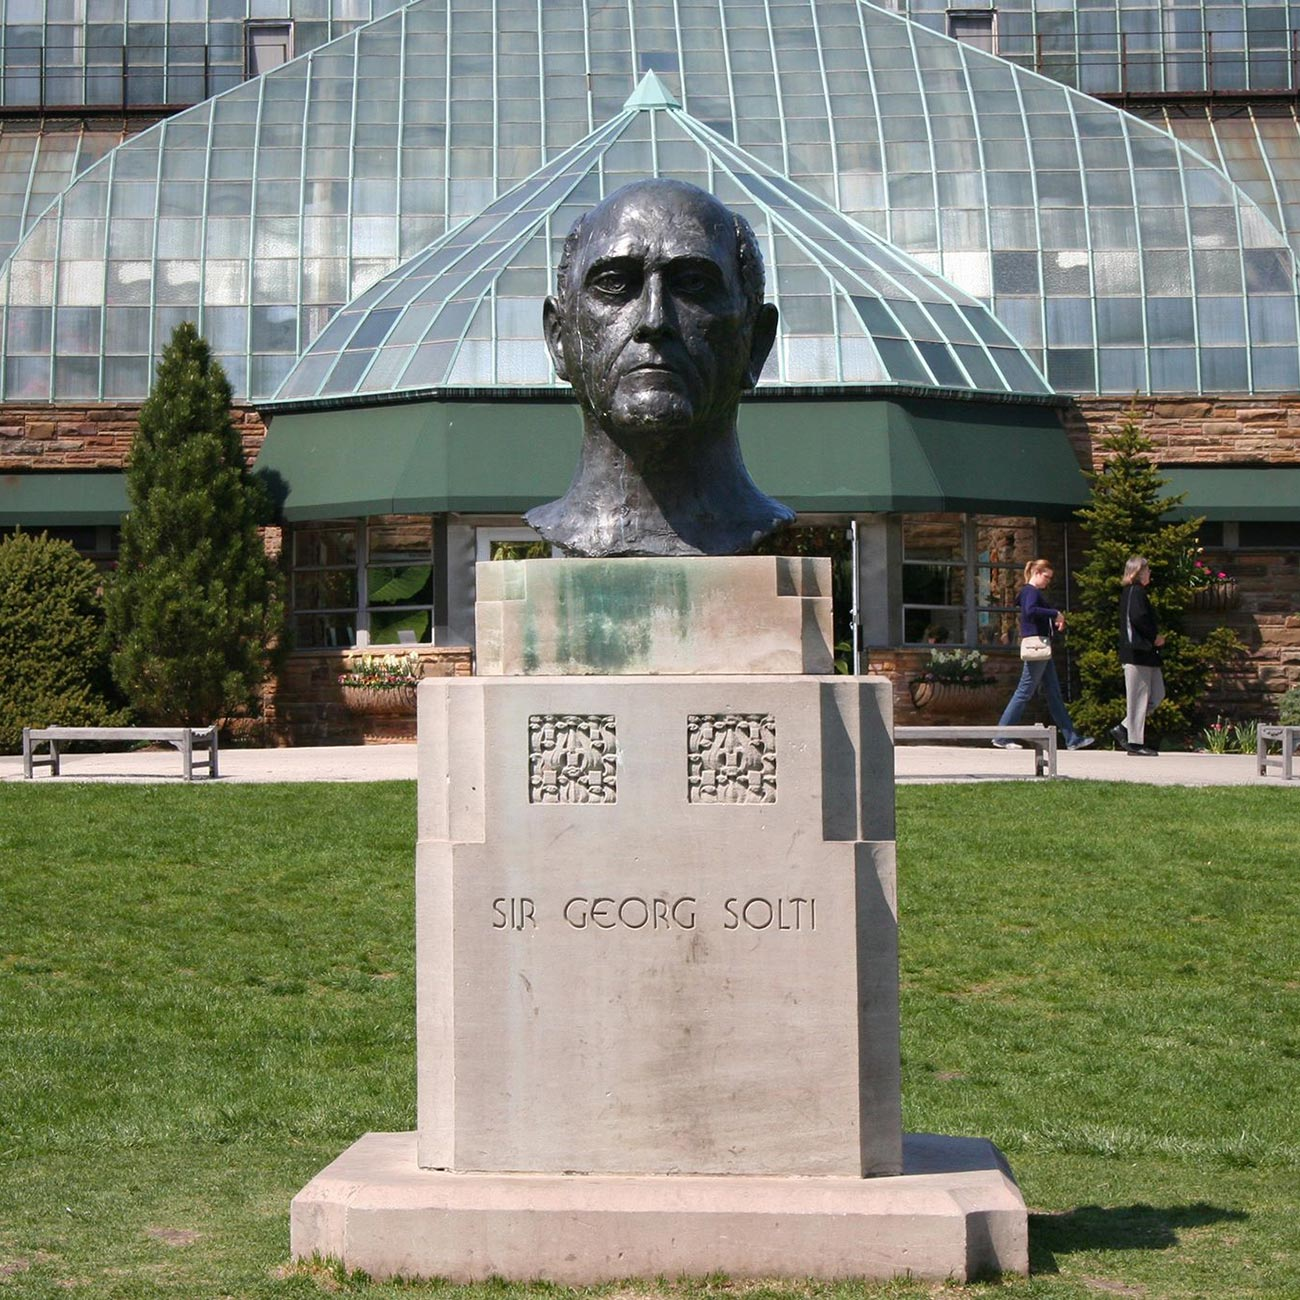 Sir Georg Solti Bust in Lincoln Park, ca. 2000. Photo courtesy of Jyoti Srivastava.